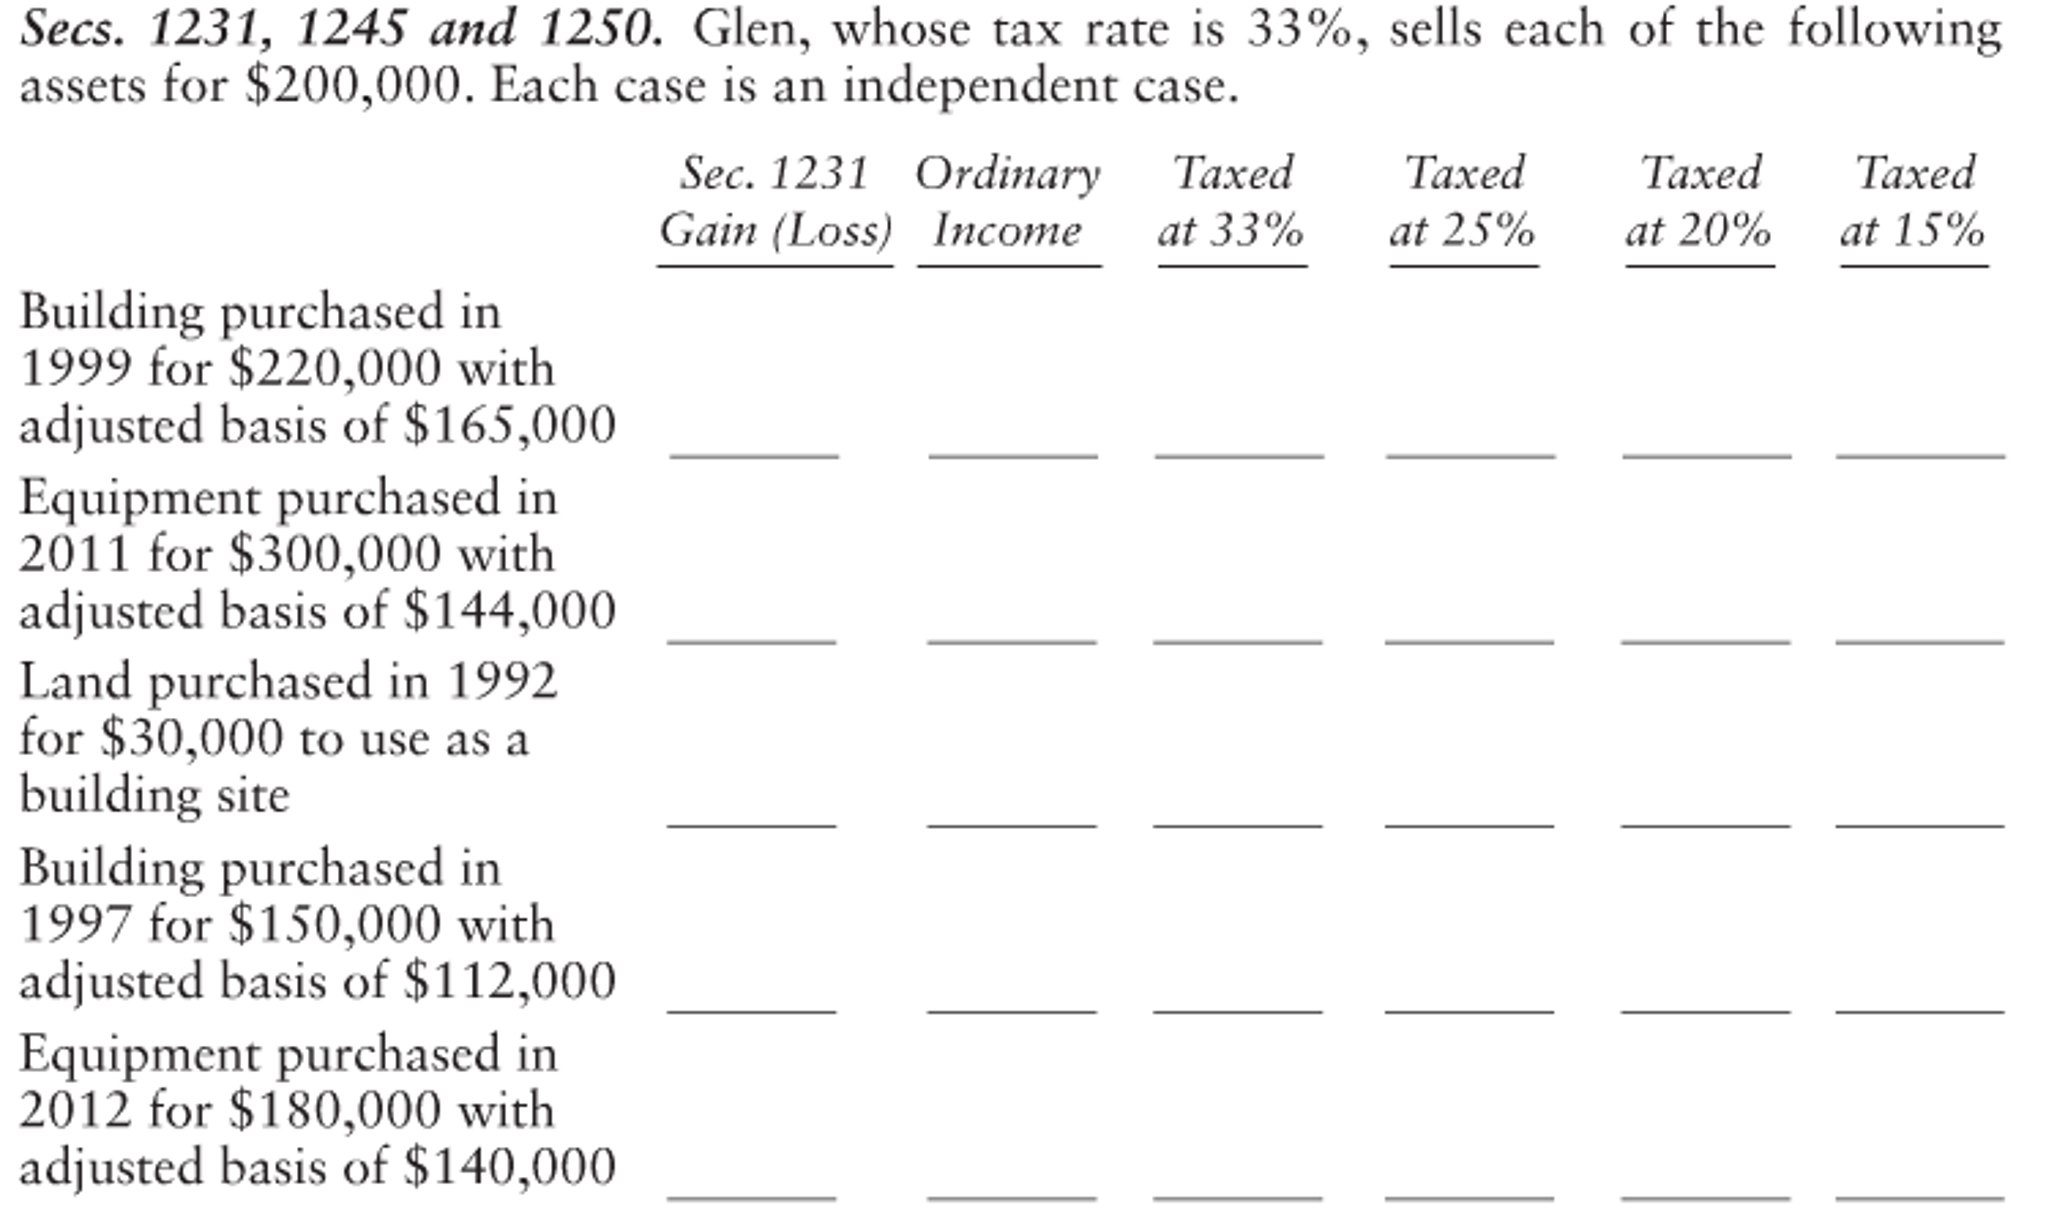 1231, 1245 and 1250. Glen, whose tax rate is 33%, sells each of the  following assets for $2.